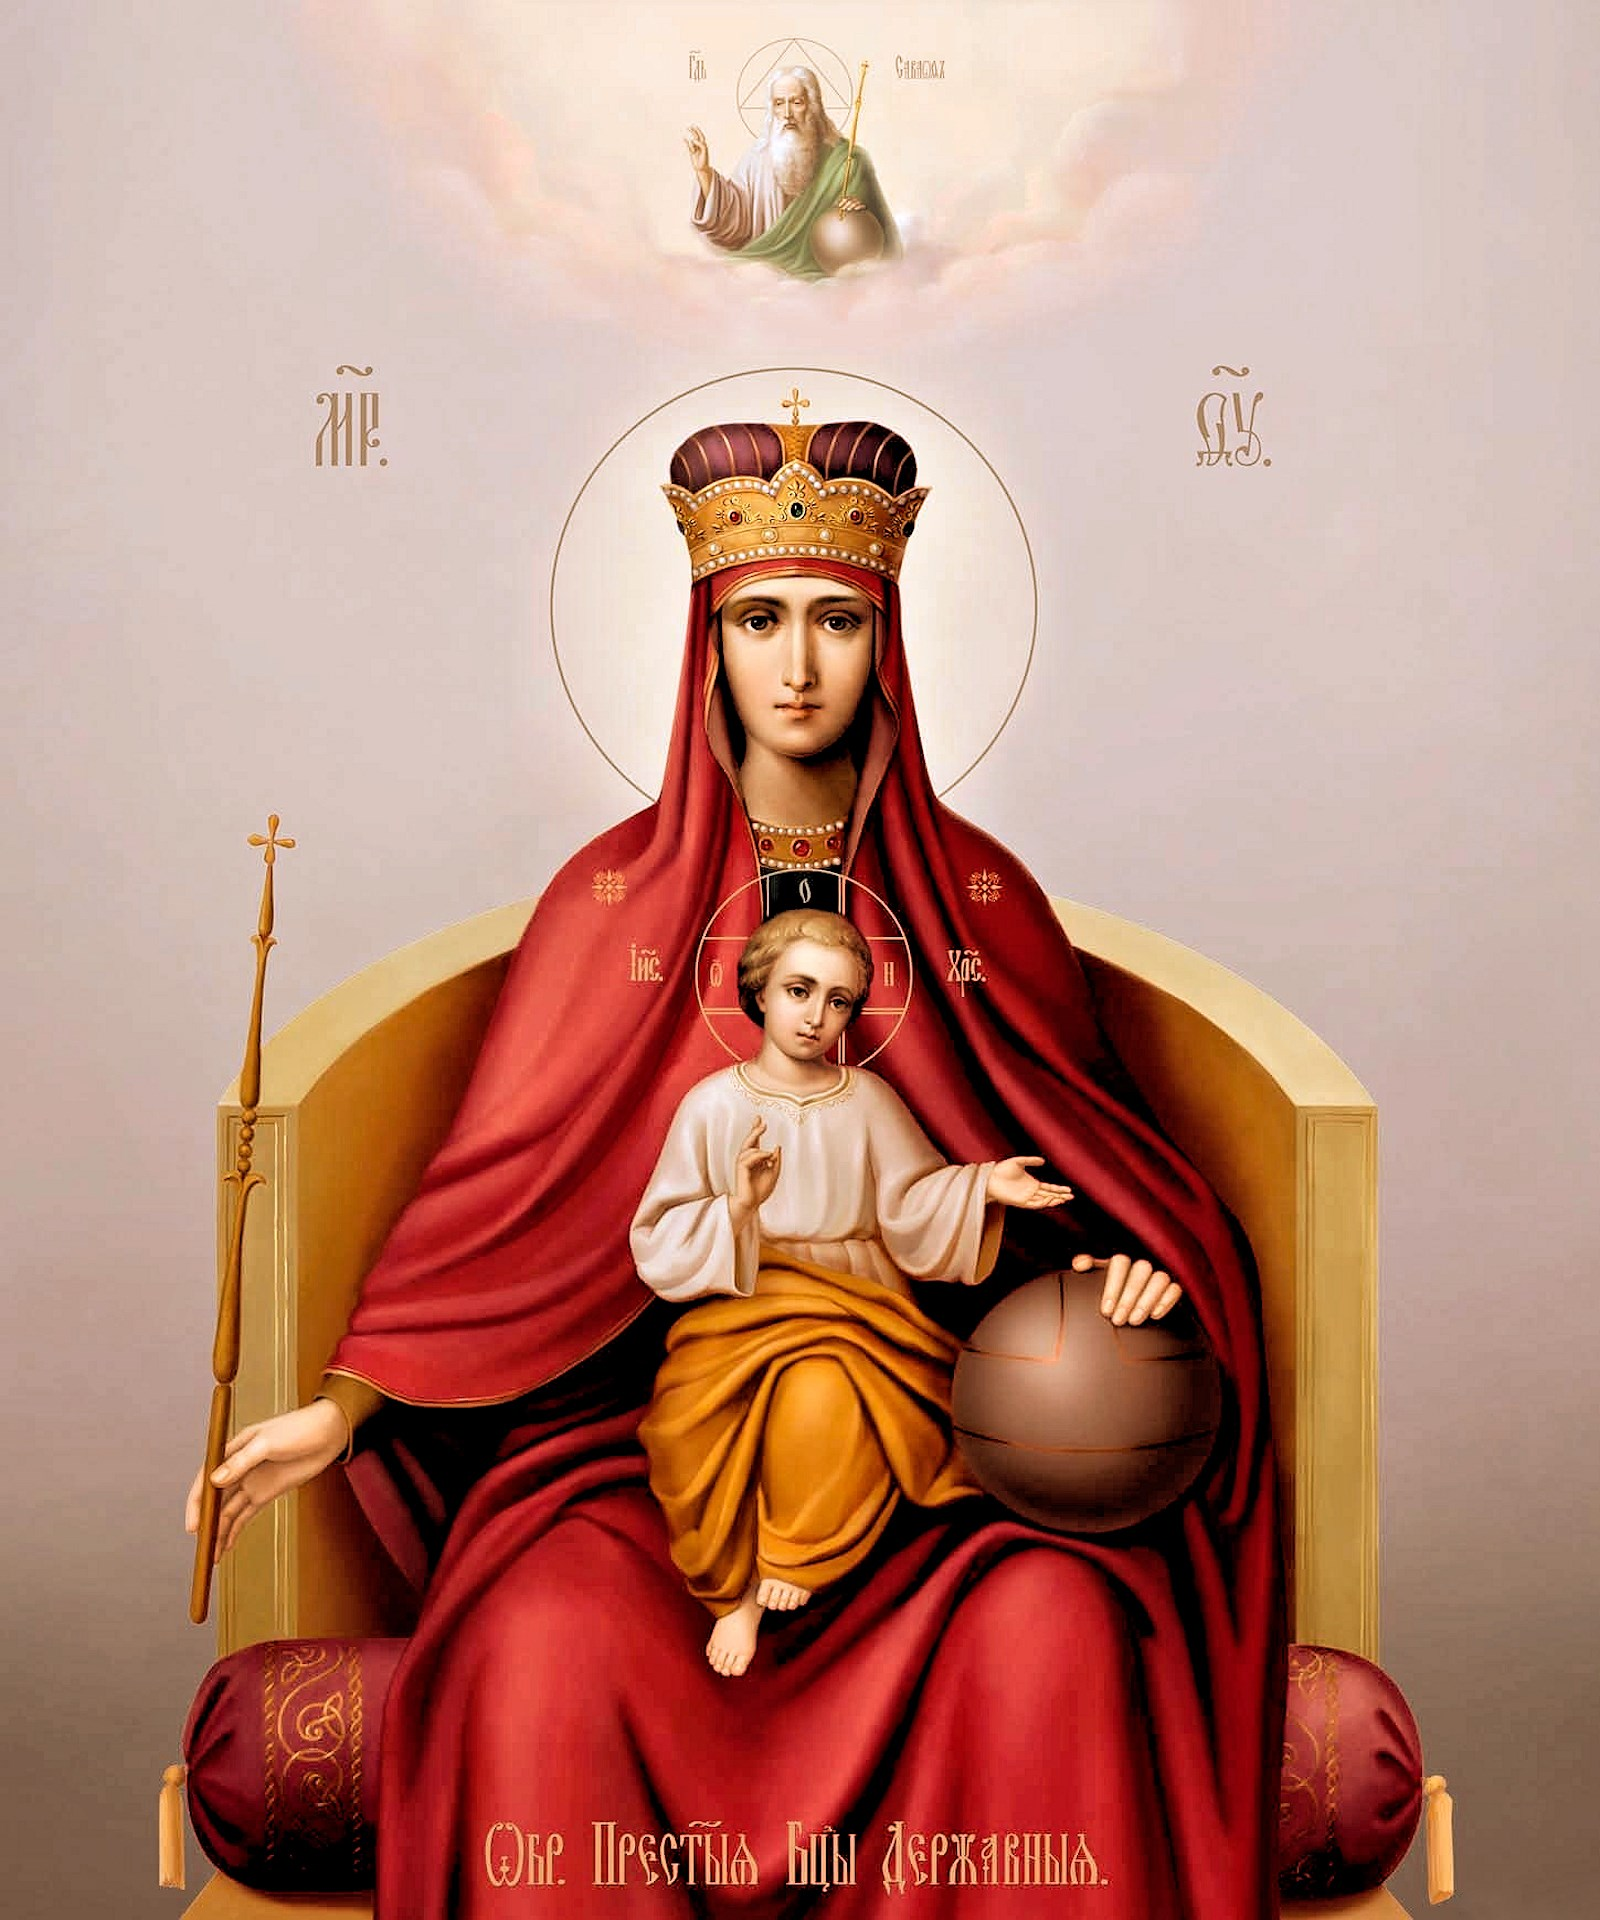 00 Icon of the most holy mother of god 'the sovereign'. 04.04.15